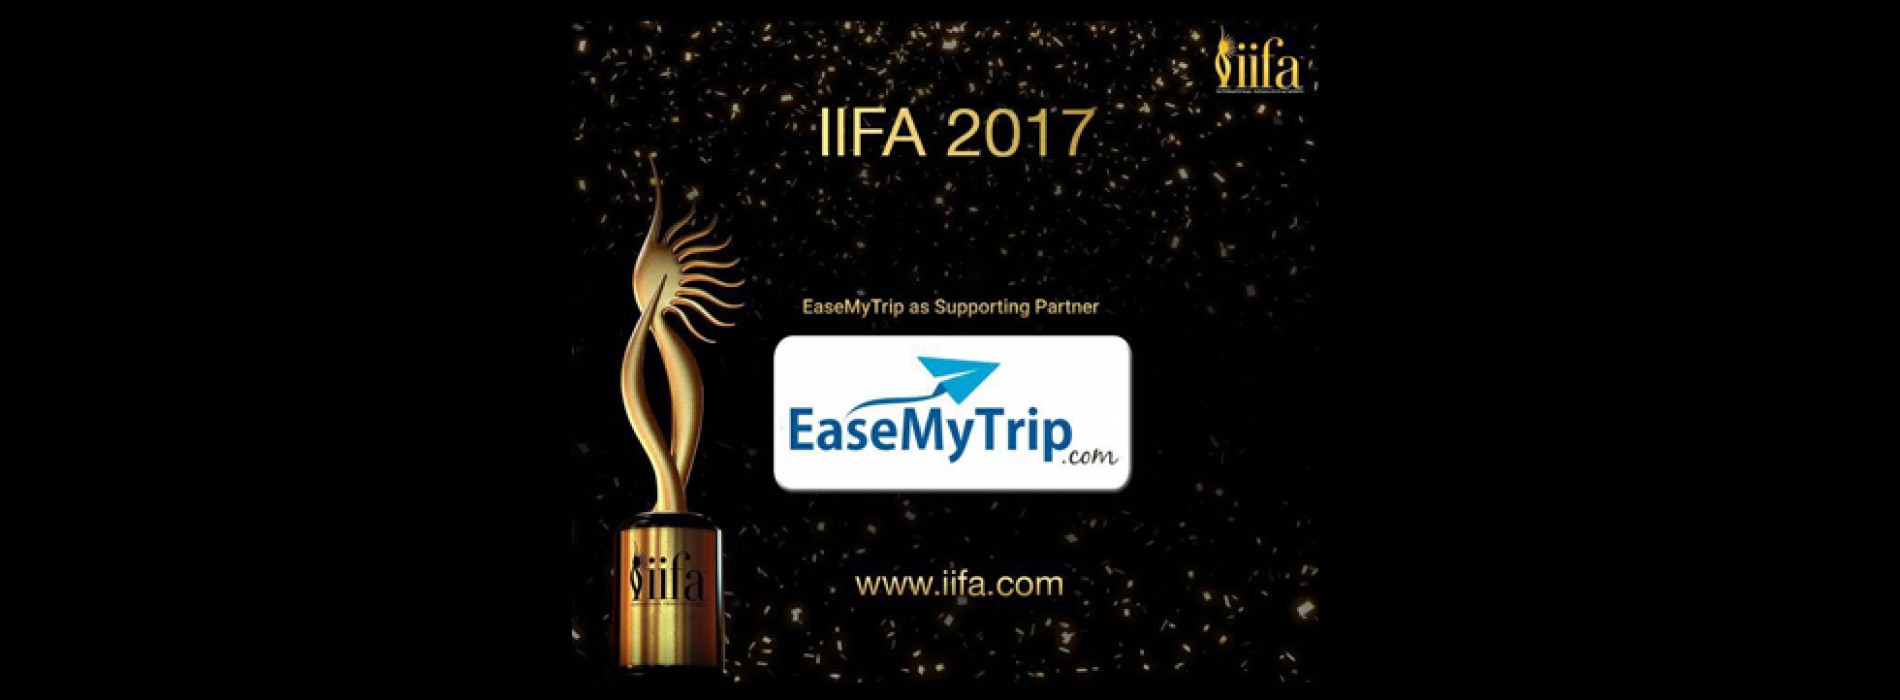 EaseMyTrip became supporting partner of IIFA Awards 2017